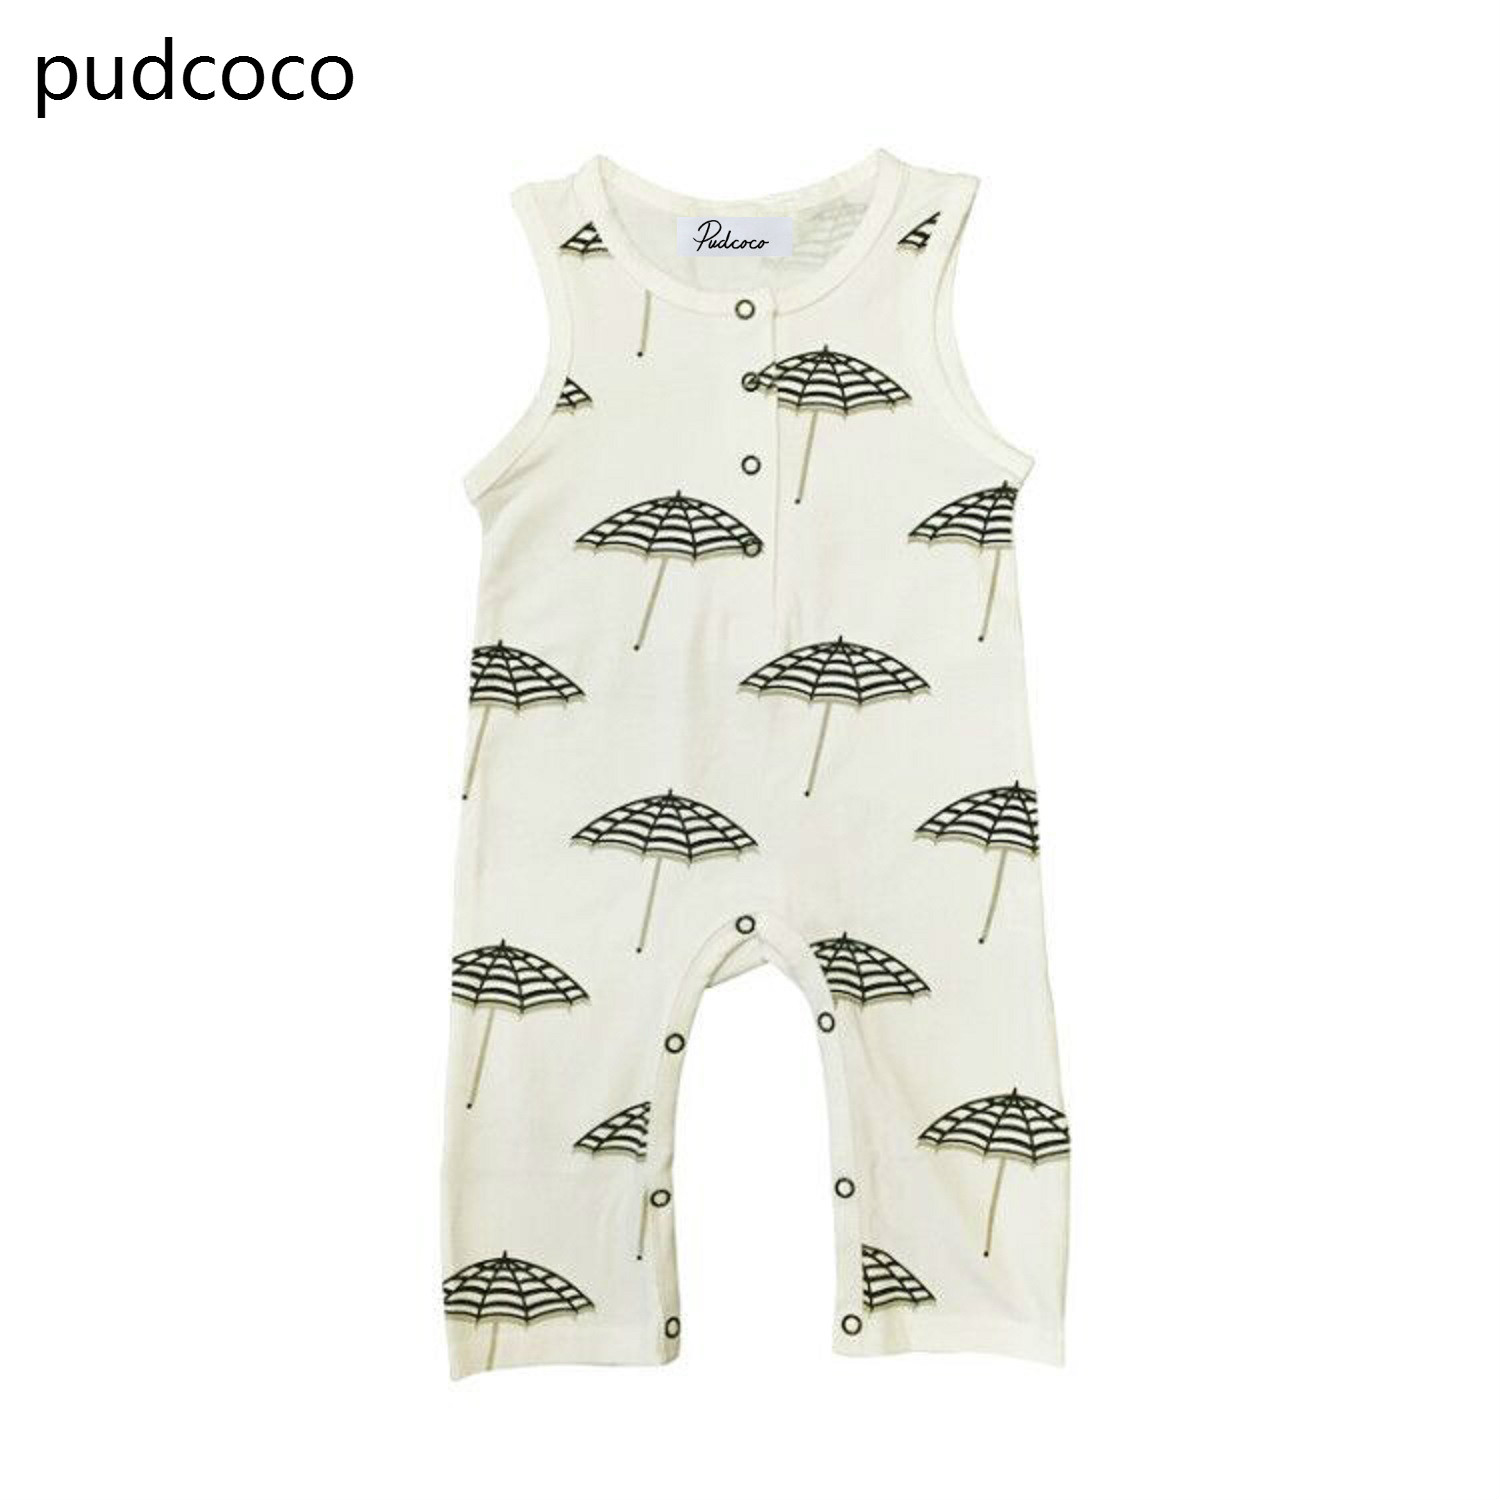 Sleeveless Baby summer   rompers   cotton Newborn Baby Boy Girl Print   Romper   Jumpsuit Outfits Clothes White Clothing 0-24M